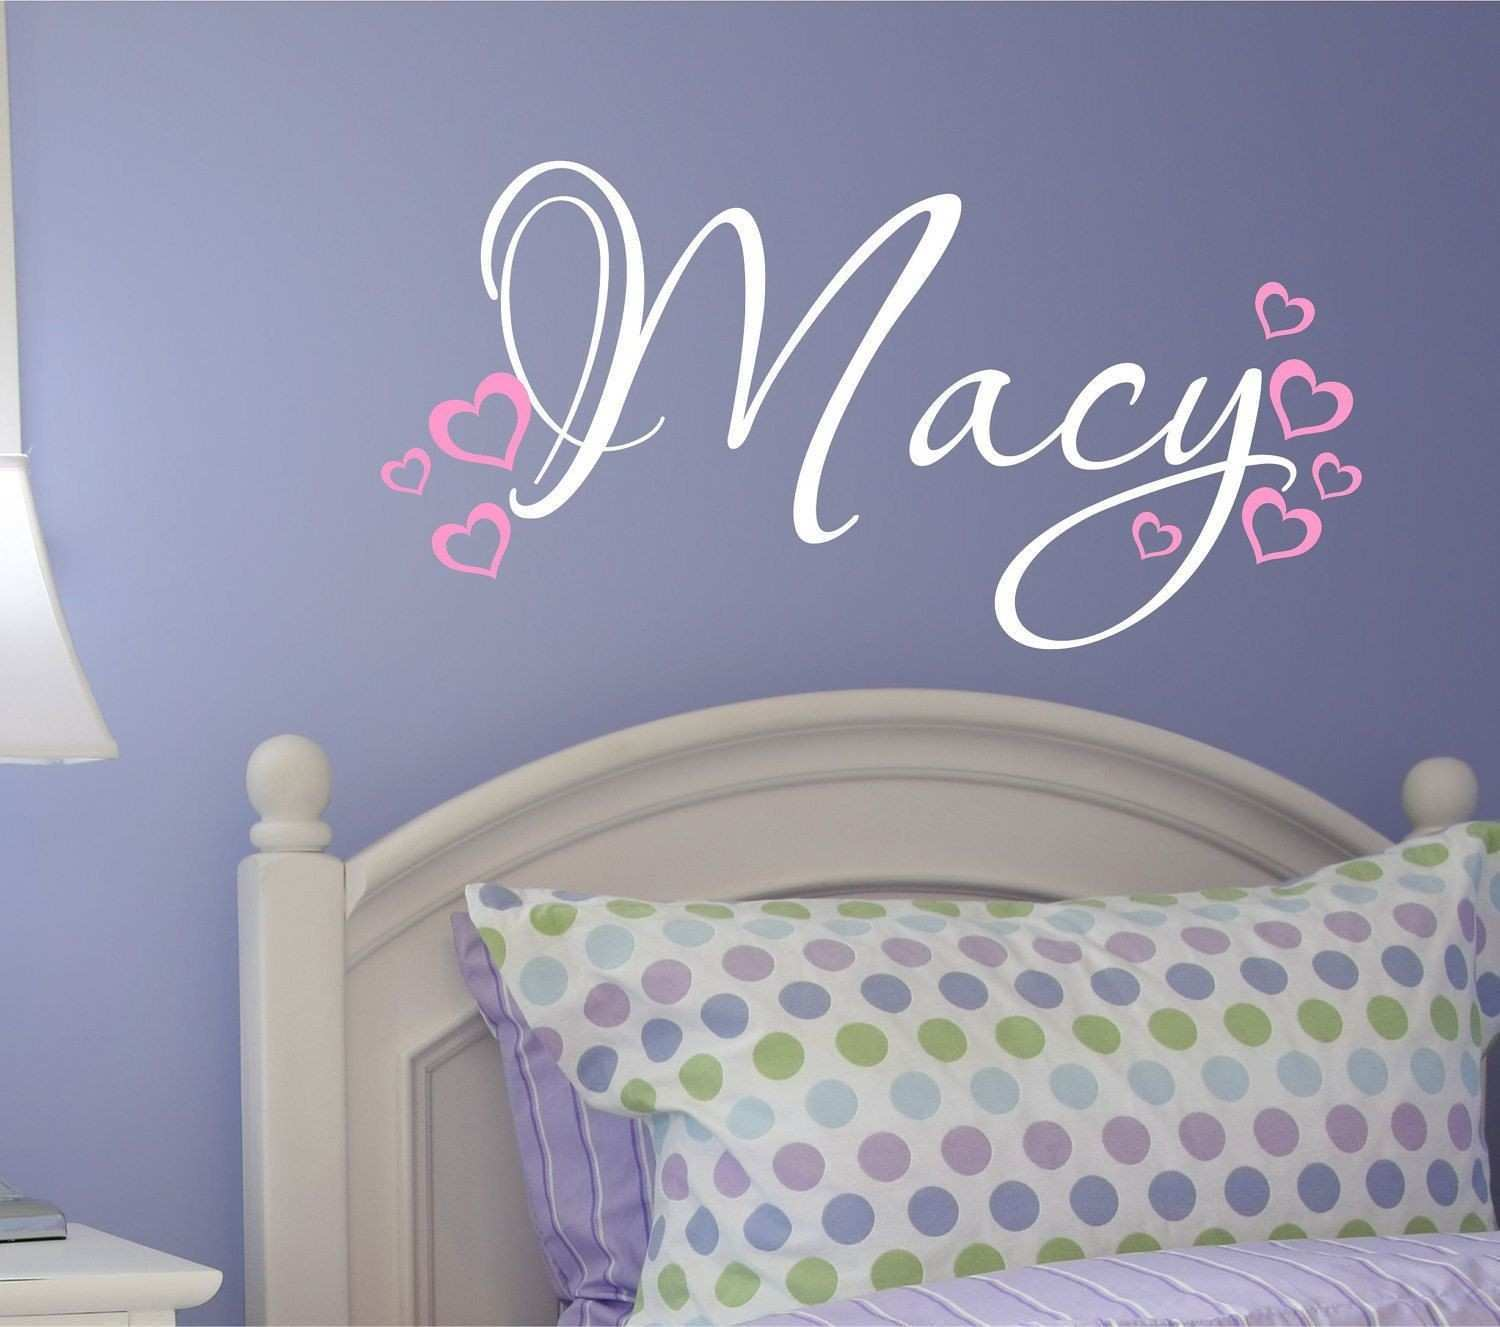 Lovely Baby Name Decals for Wall